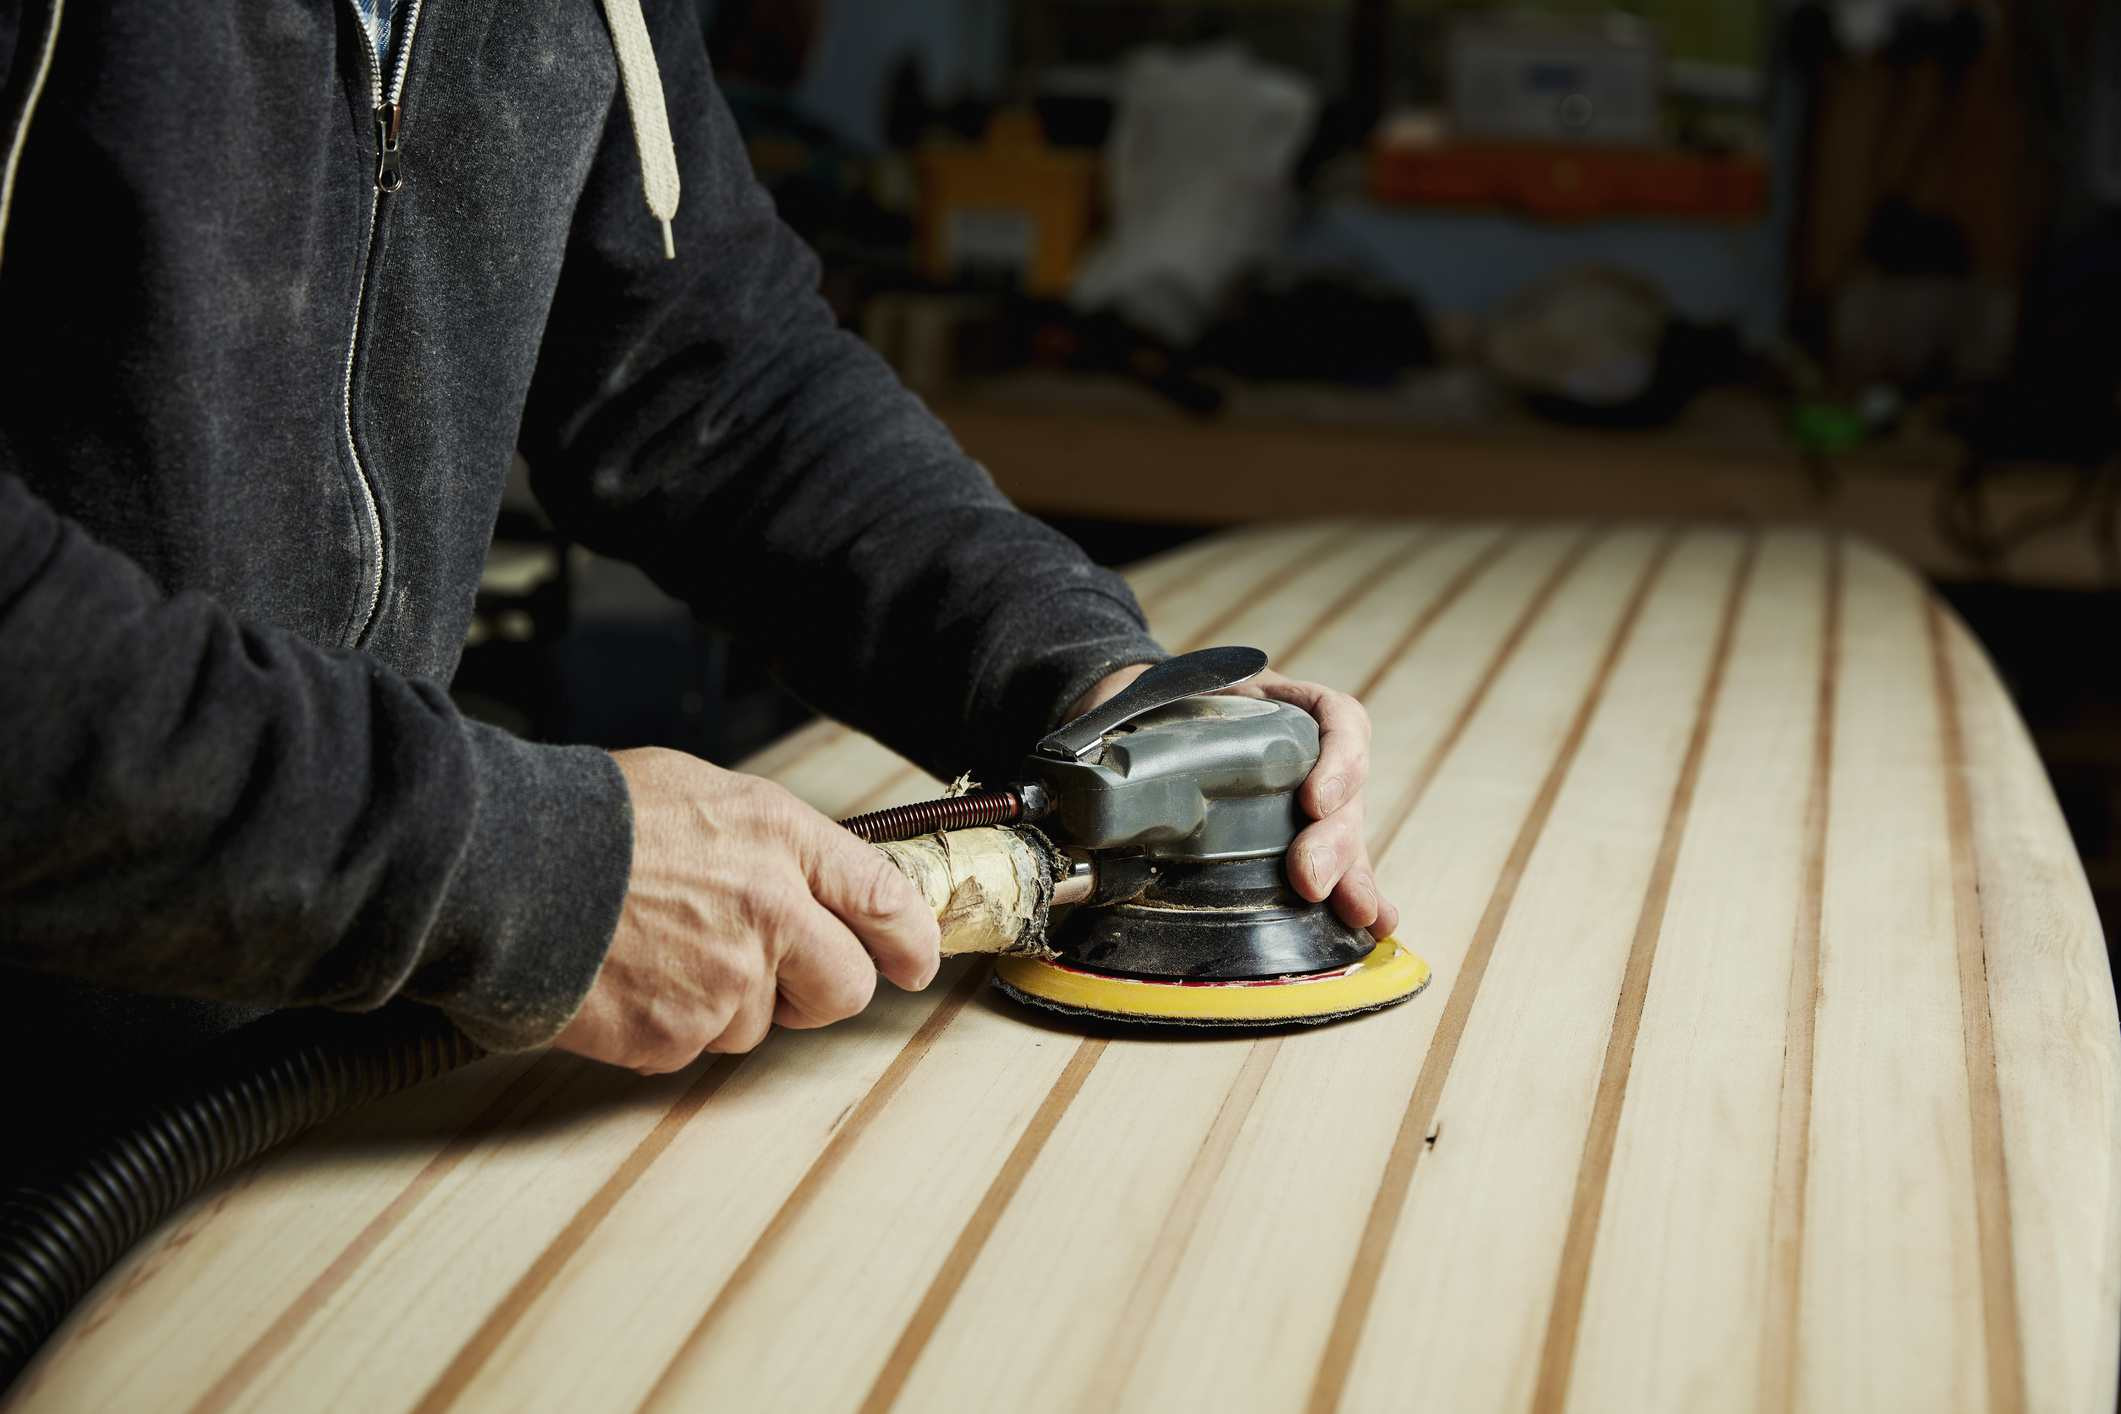 sanding hardwood floors with a hand sander of how to sand wood intended for a mans hands working with an orbital sanders